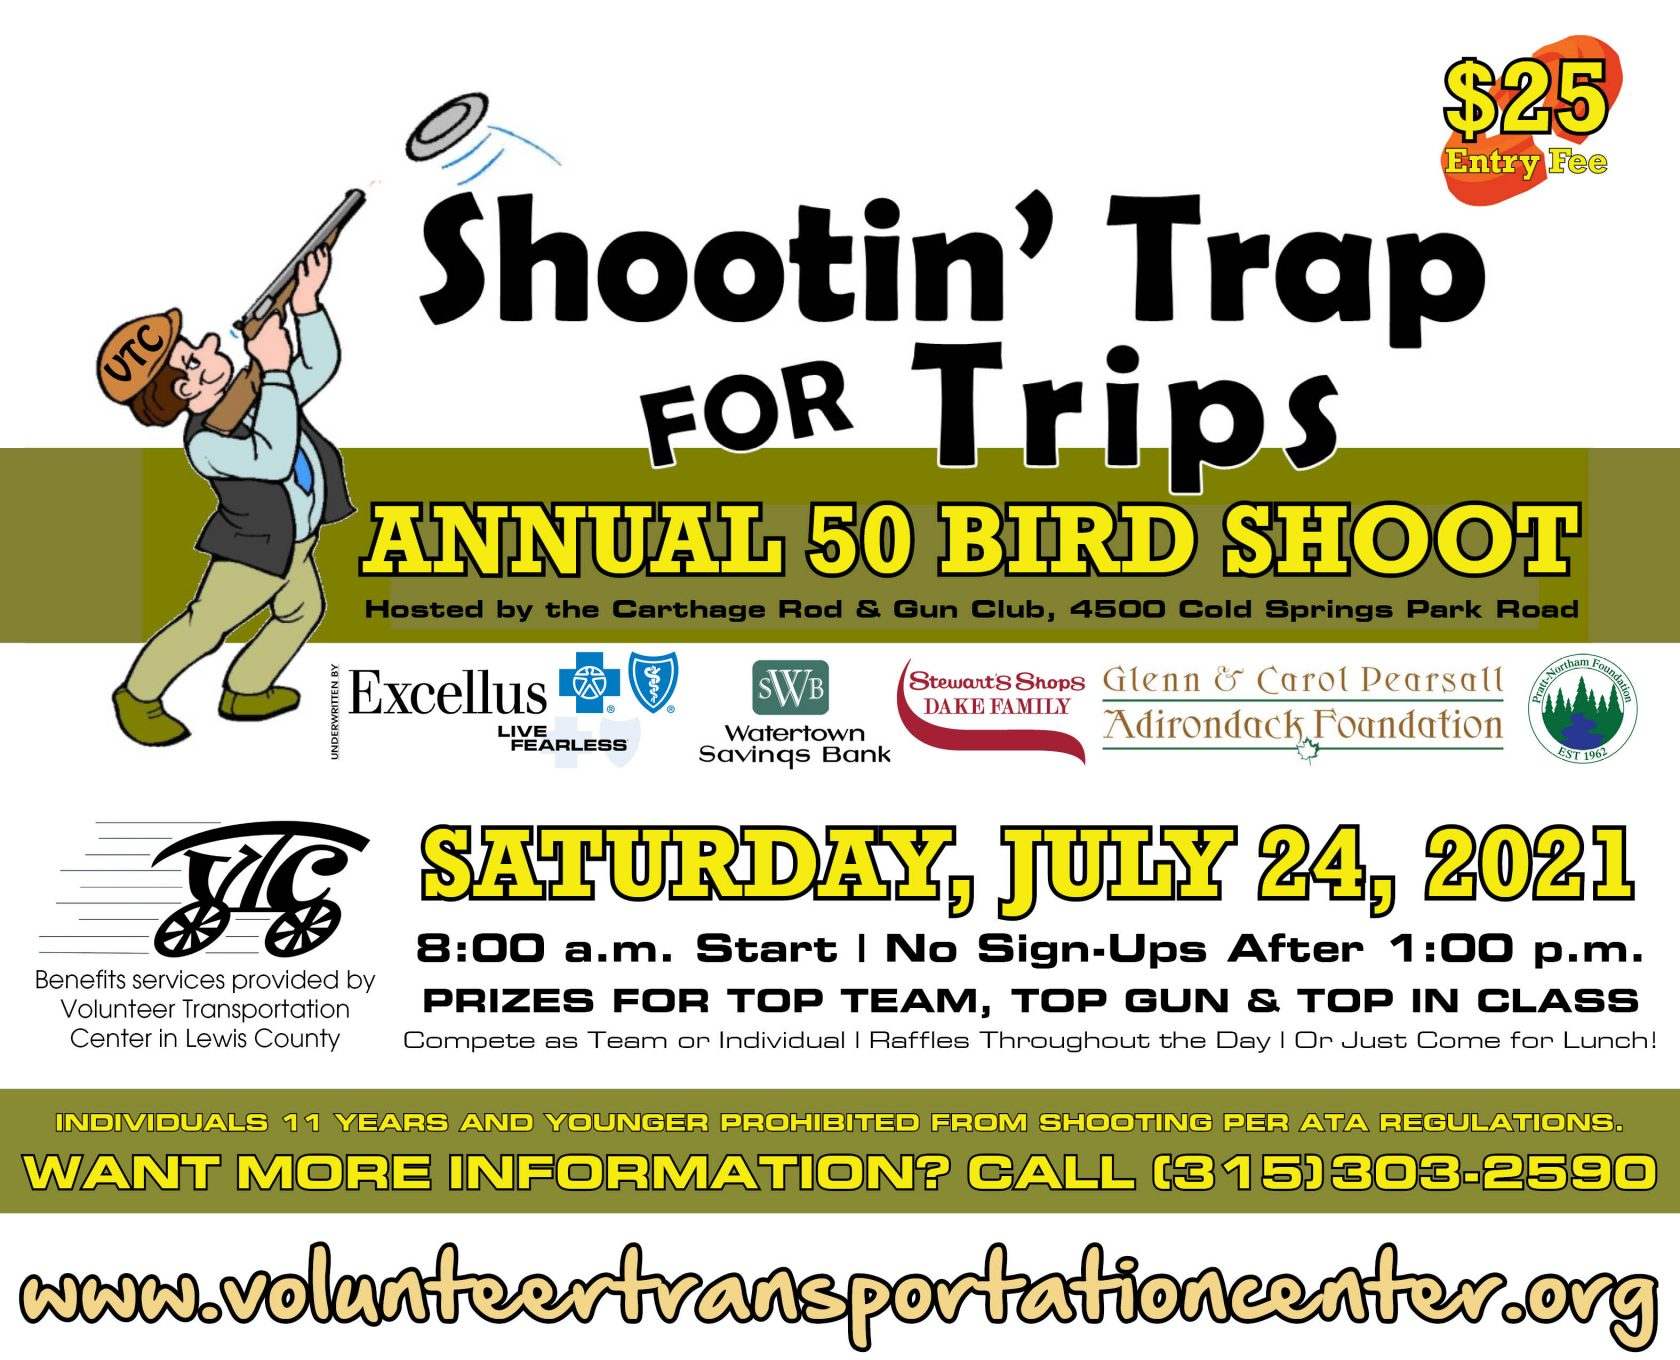 Shootin' Trap for Trips to Return for 9th Year